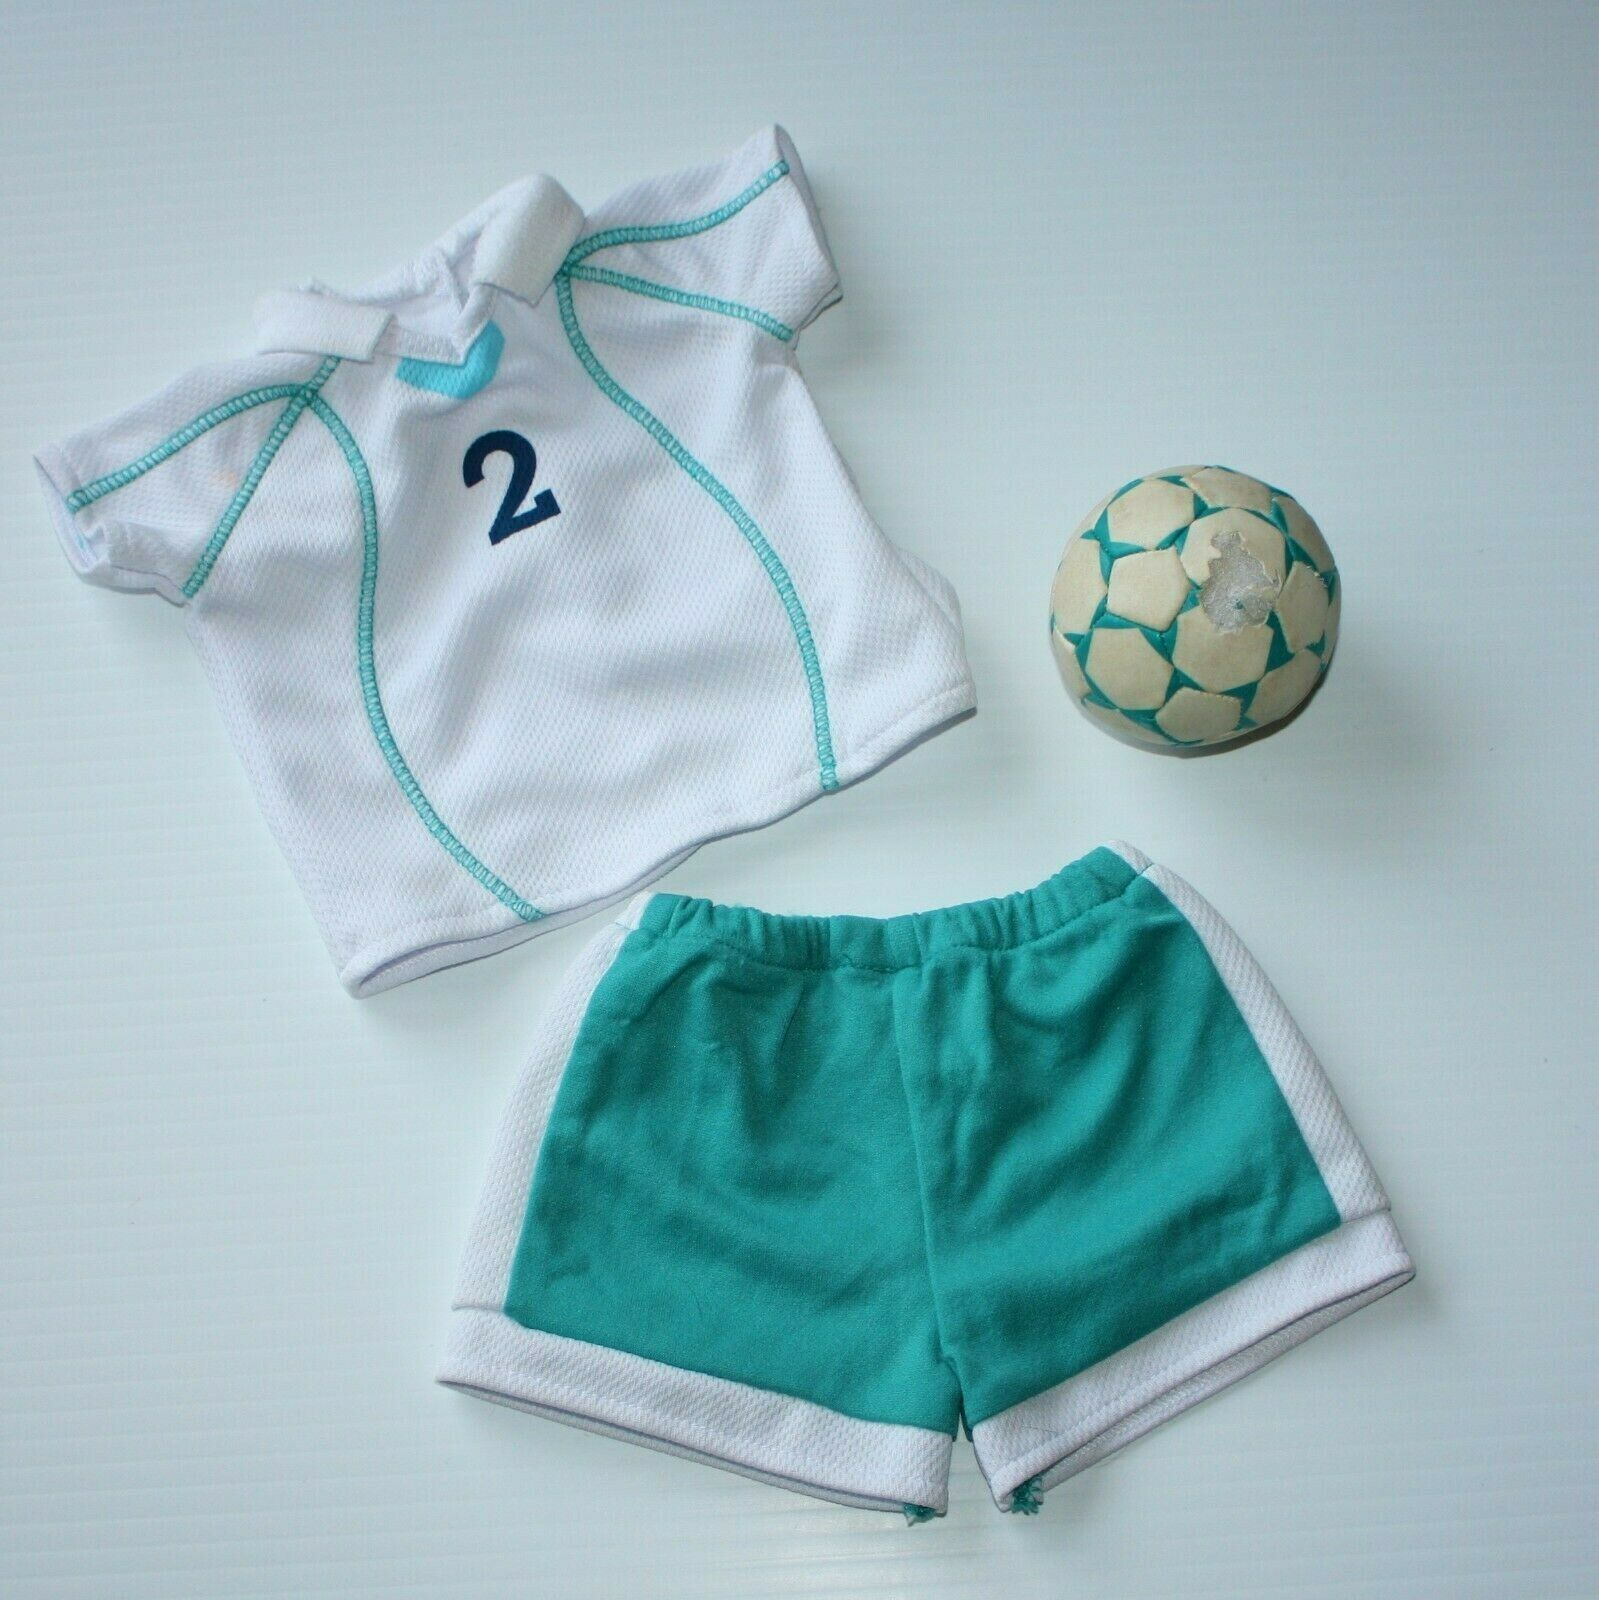 American 2-1 Soccer Outfit 2006 Top Shorts Ball For Doll Only - $8.99